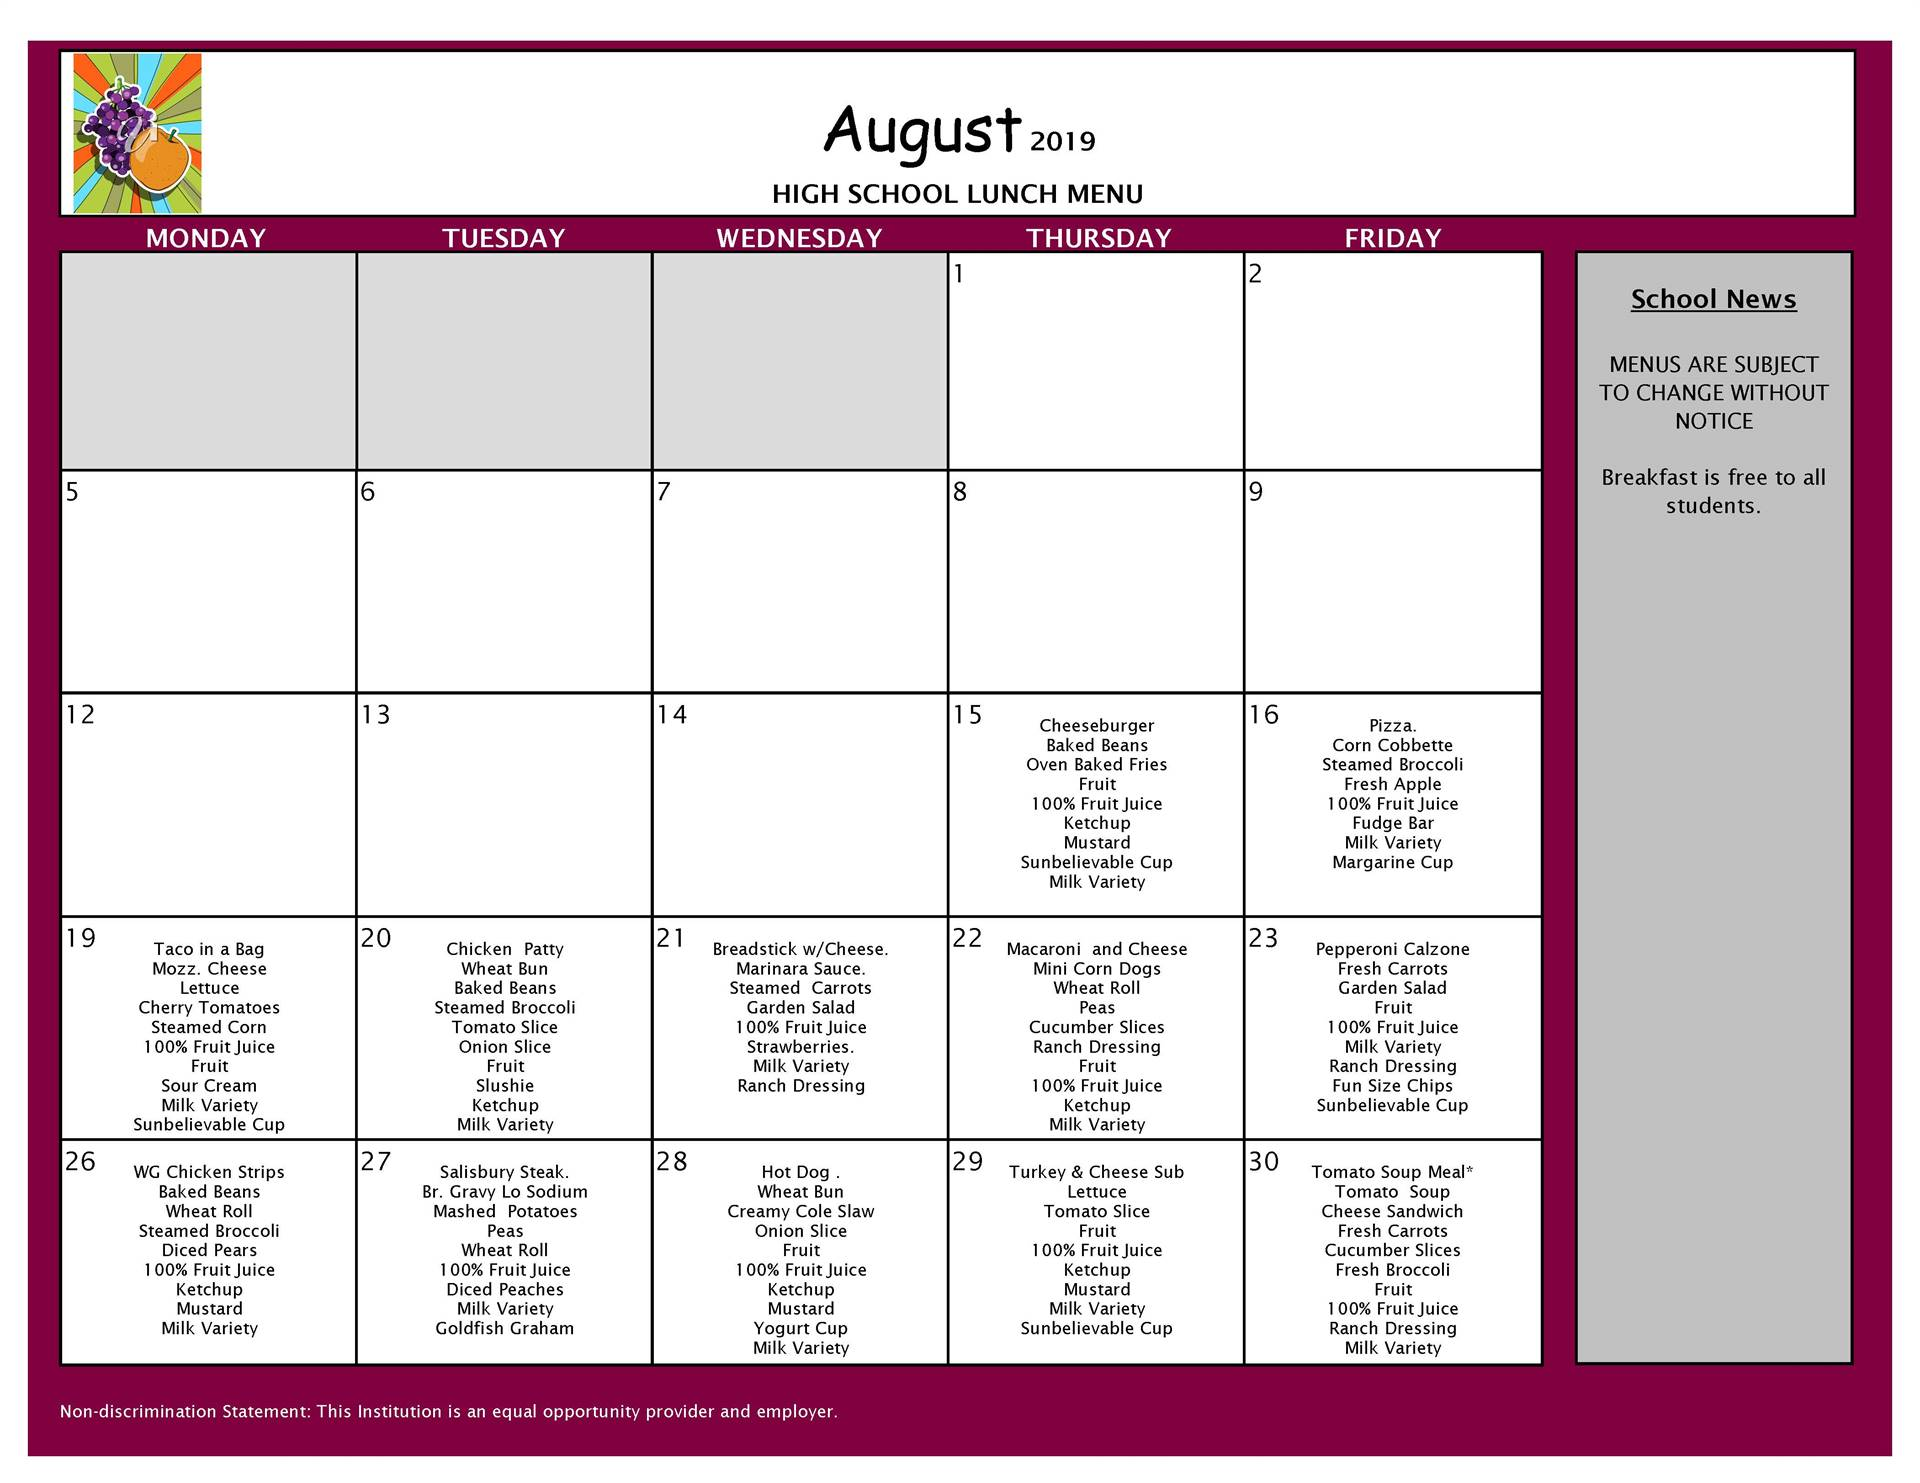 August Lunch Menu Grades 9-12